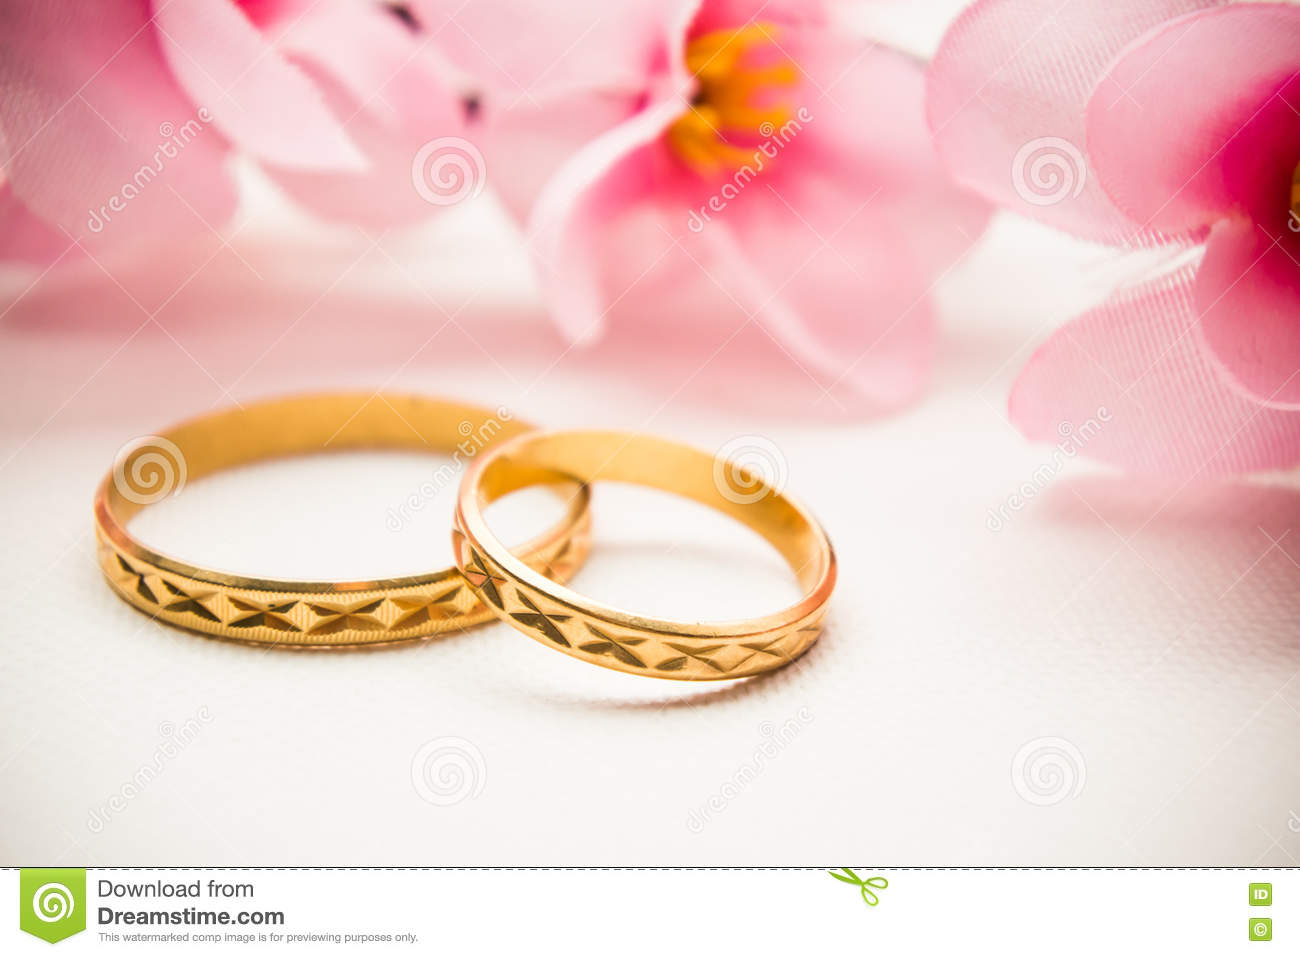 stock photo wedding rings pink flowers background gold soft image pink wedding rings Wedding rings and pink flowers background